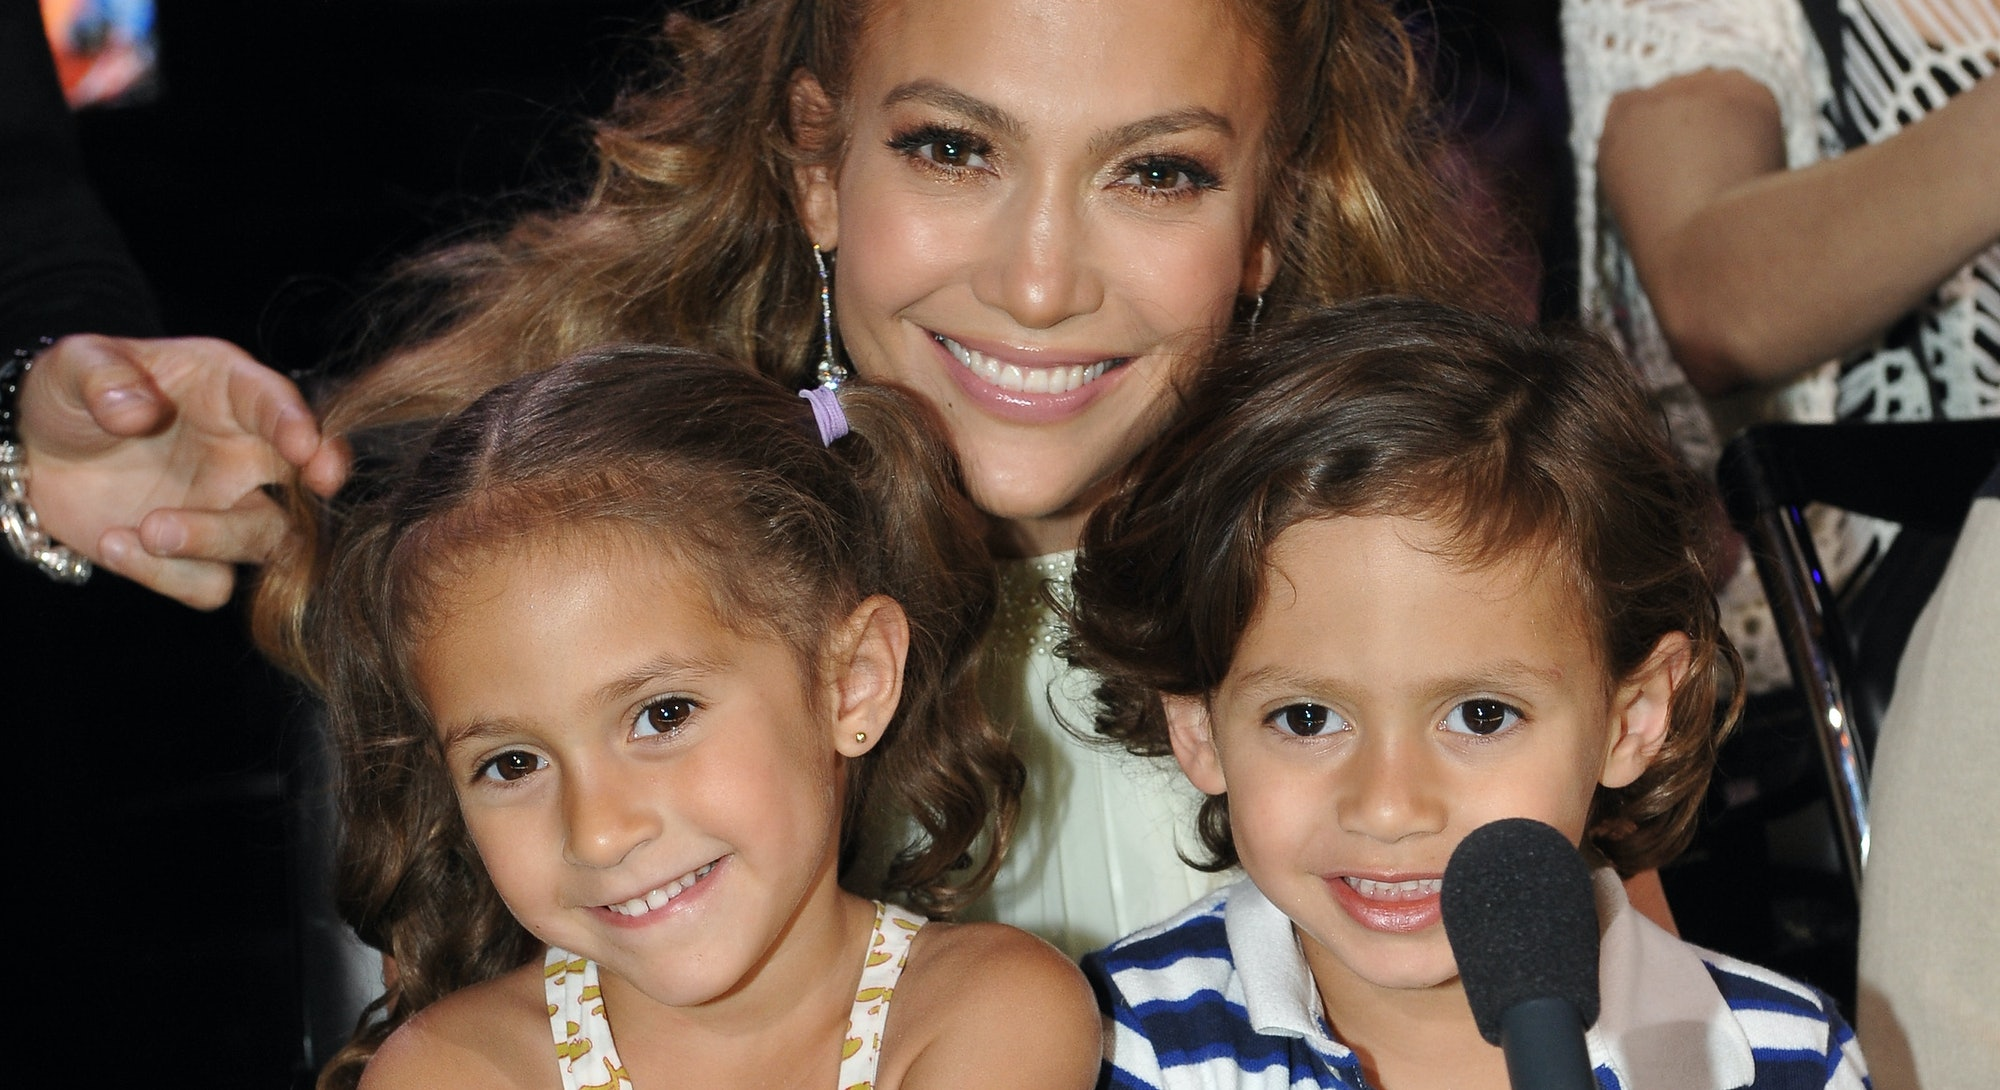 HOLLYWOOD, CA - MAY 10: Judge Jennifer Lopez (C) with daughter Emme (L) and son Max at FOX's American Idol Season 11 Top 4 To 3 Live Elimination Show on May 10, 2012 in Hollywood, California. (Photo by FOX via Getty Images)